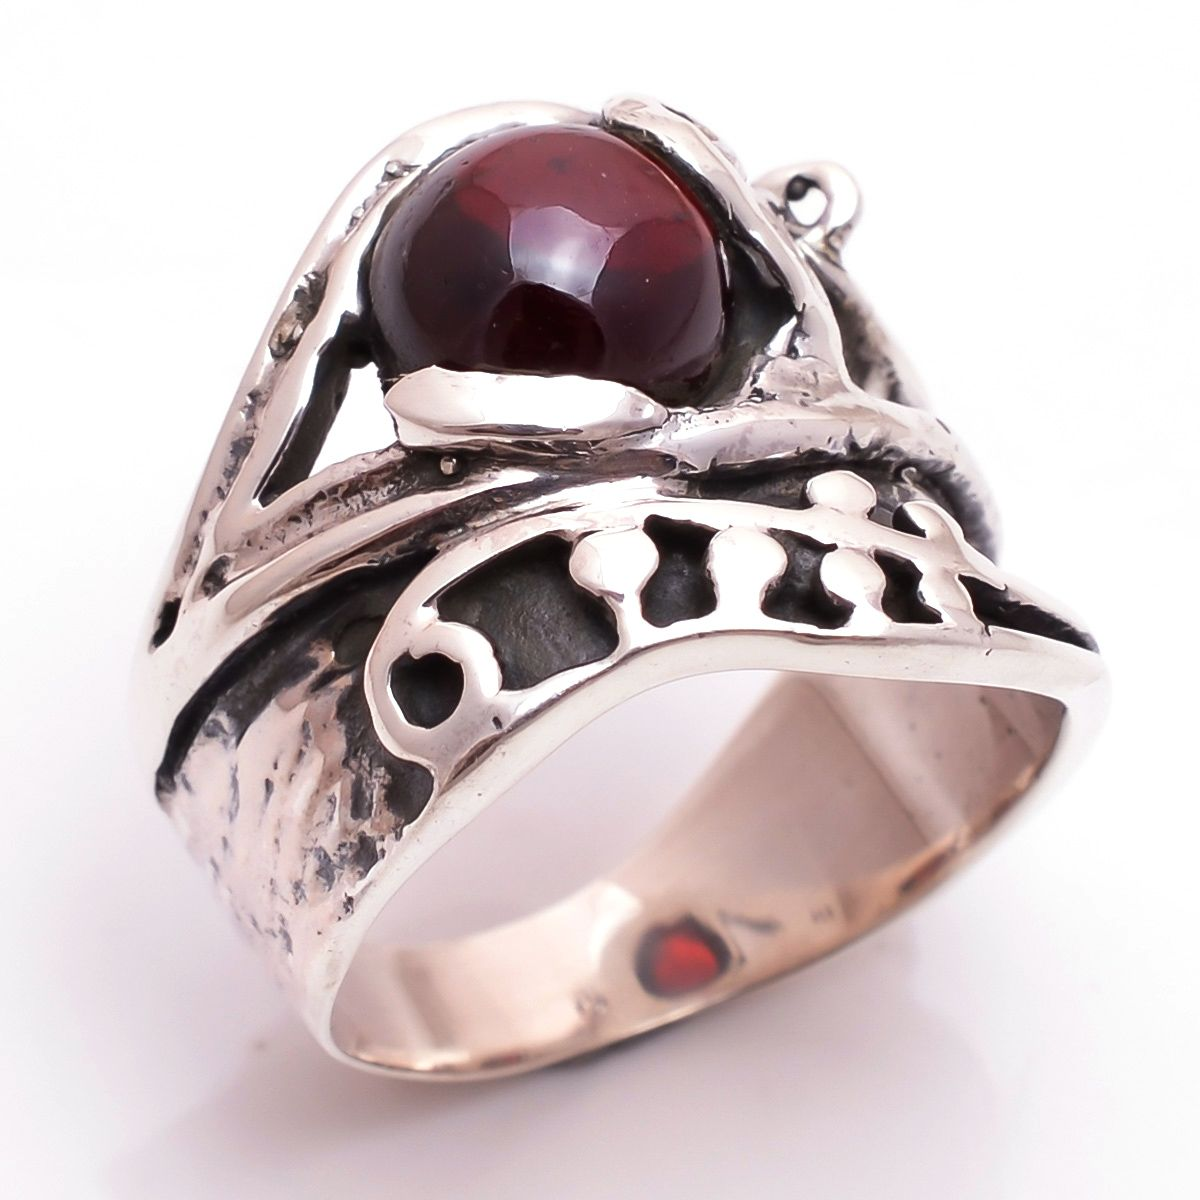 Garnet Gemstone 925 Sterling Silver Ring Size 6.5